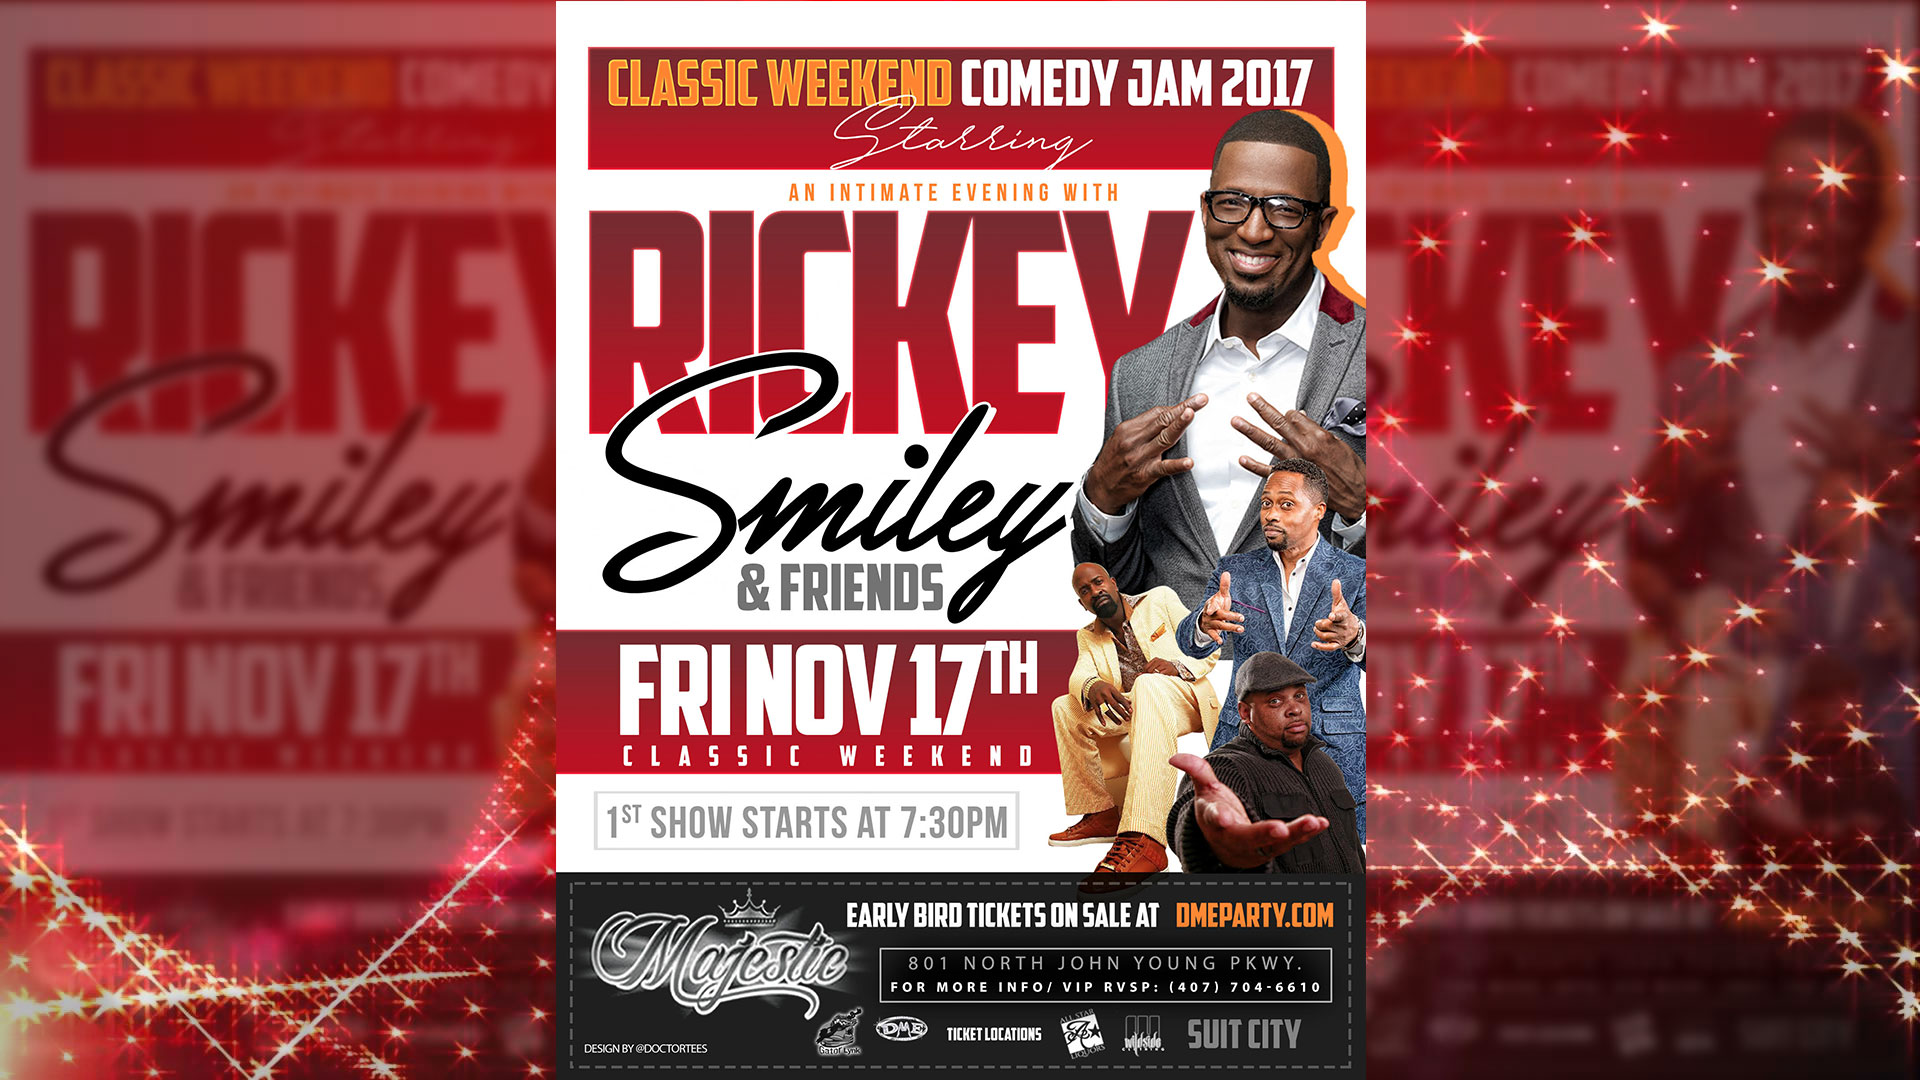 Rickey Smiley 2017